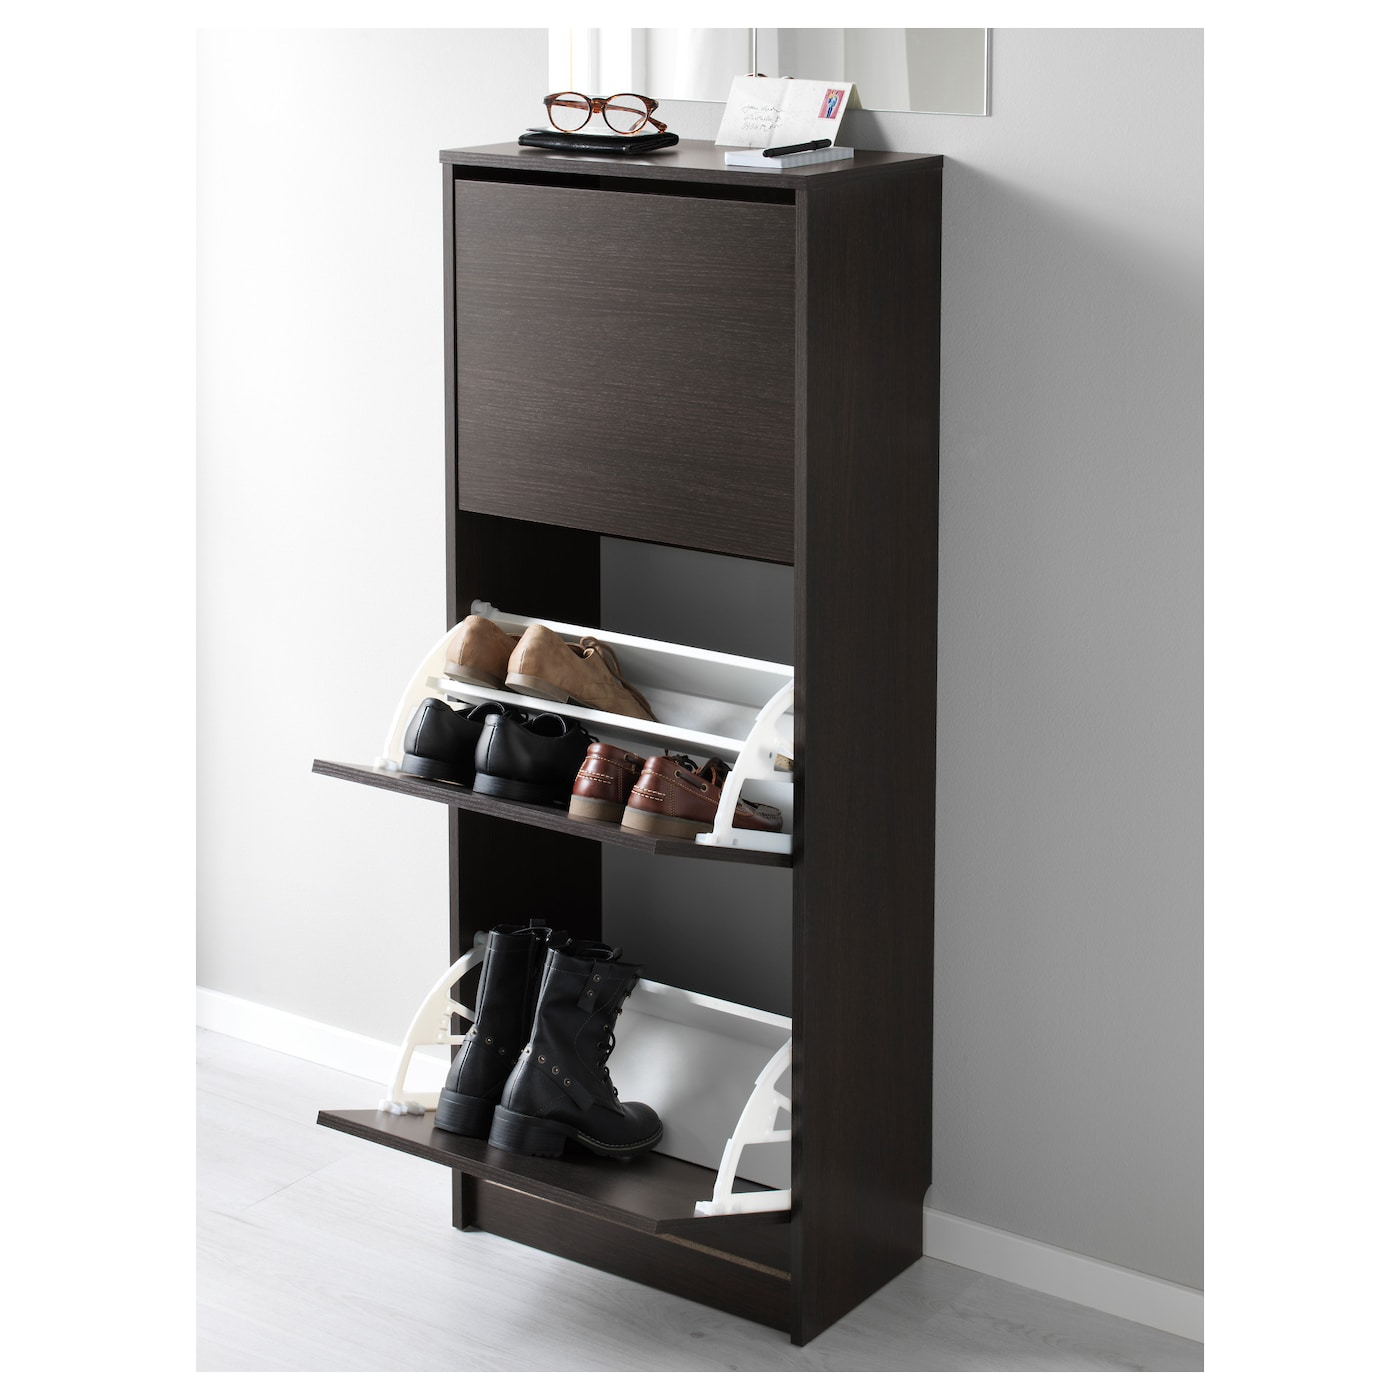 Bissa Shoe Cabinet With 3 Compartments Black Brown 49x135